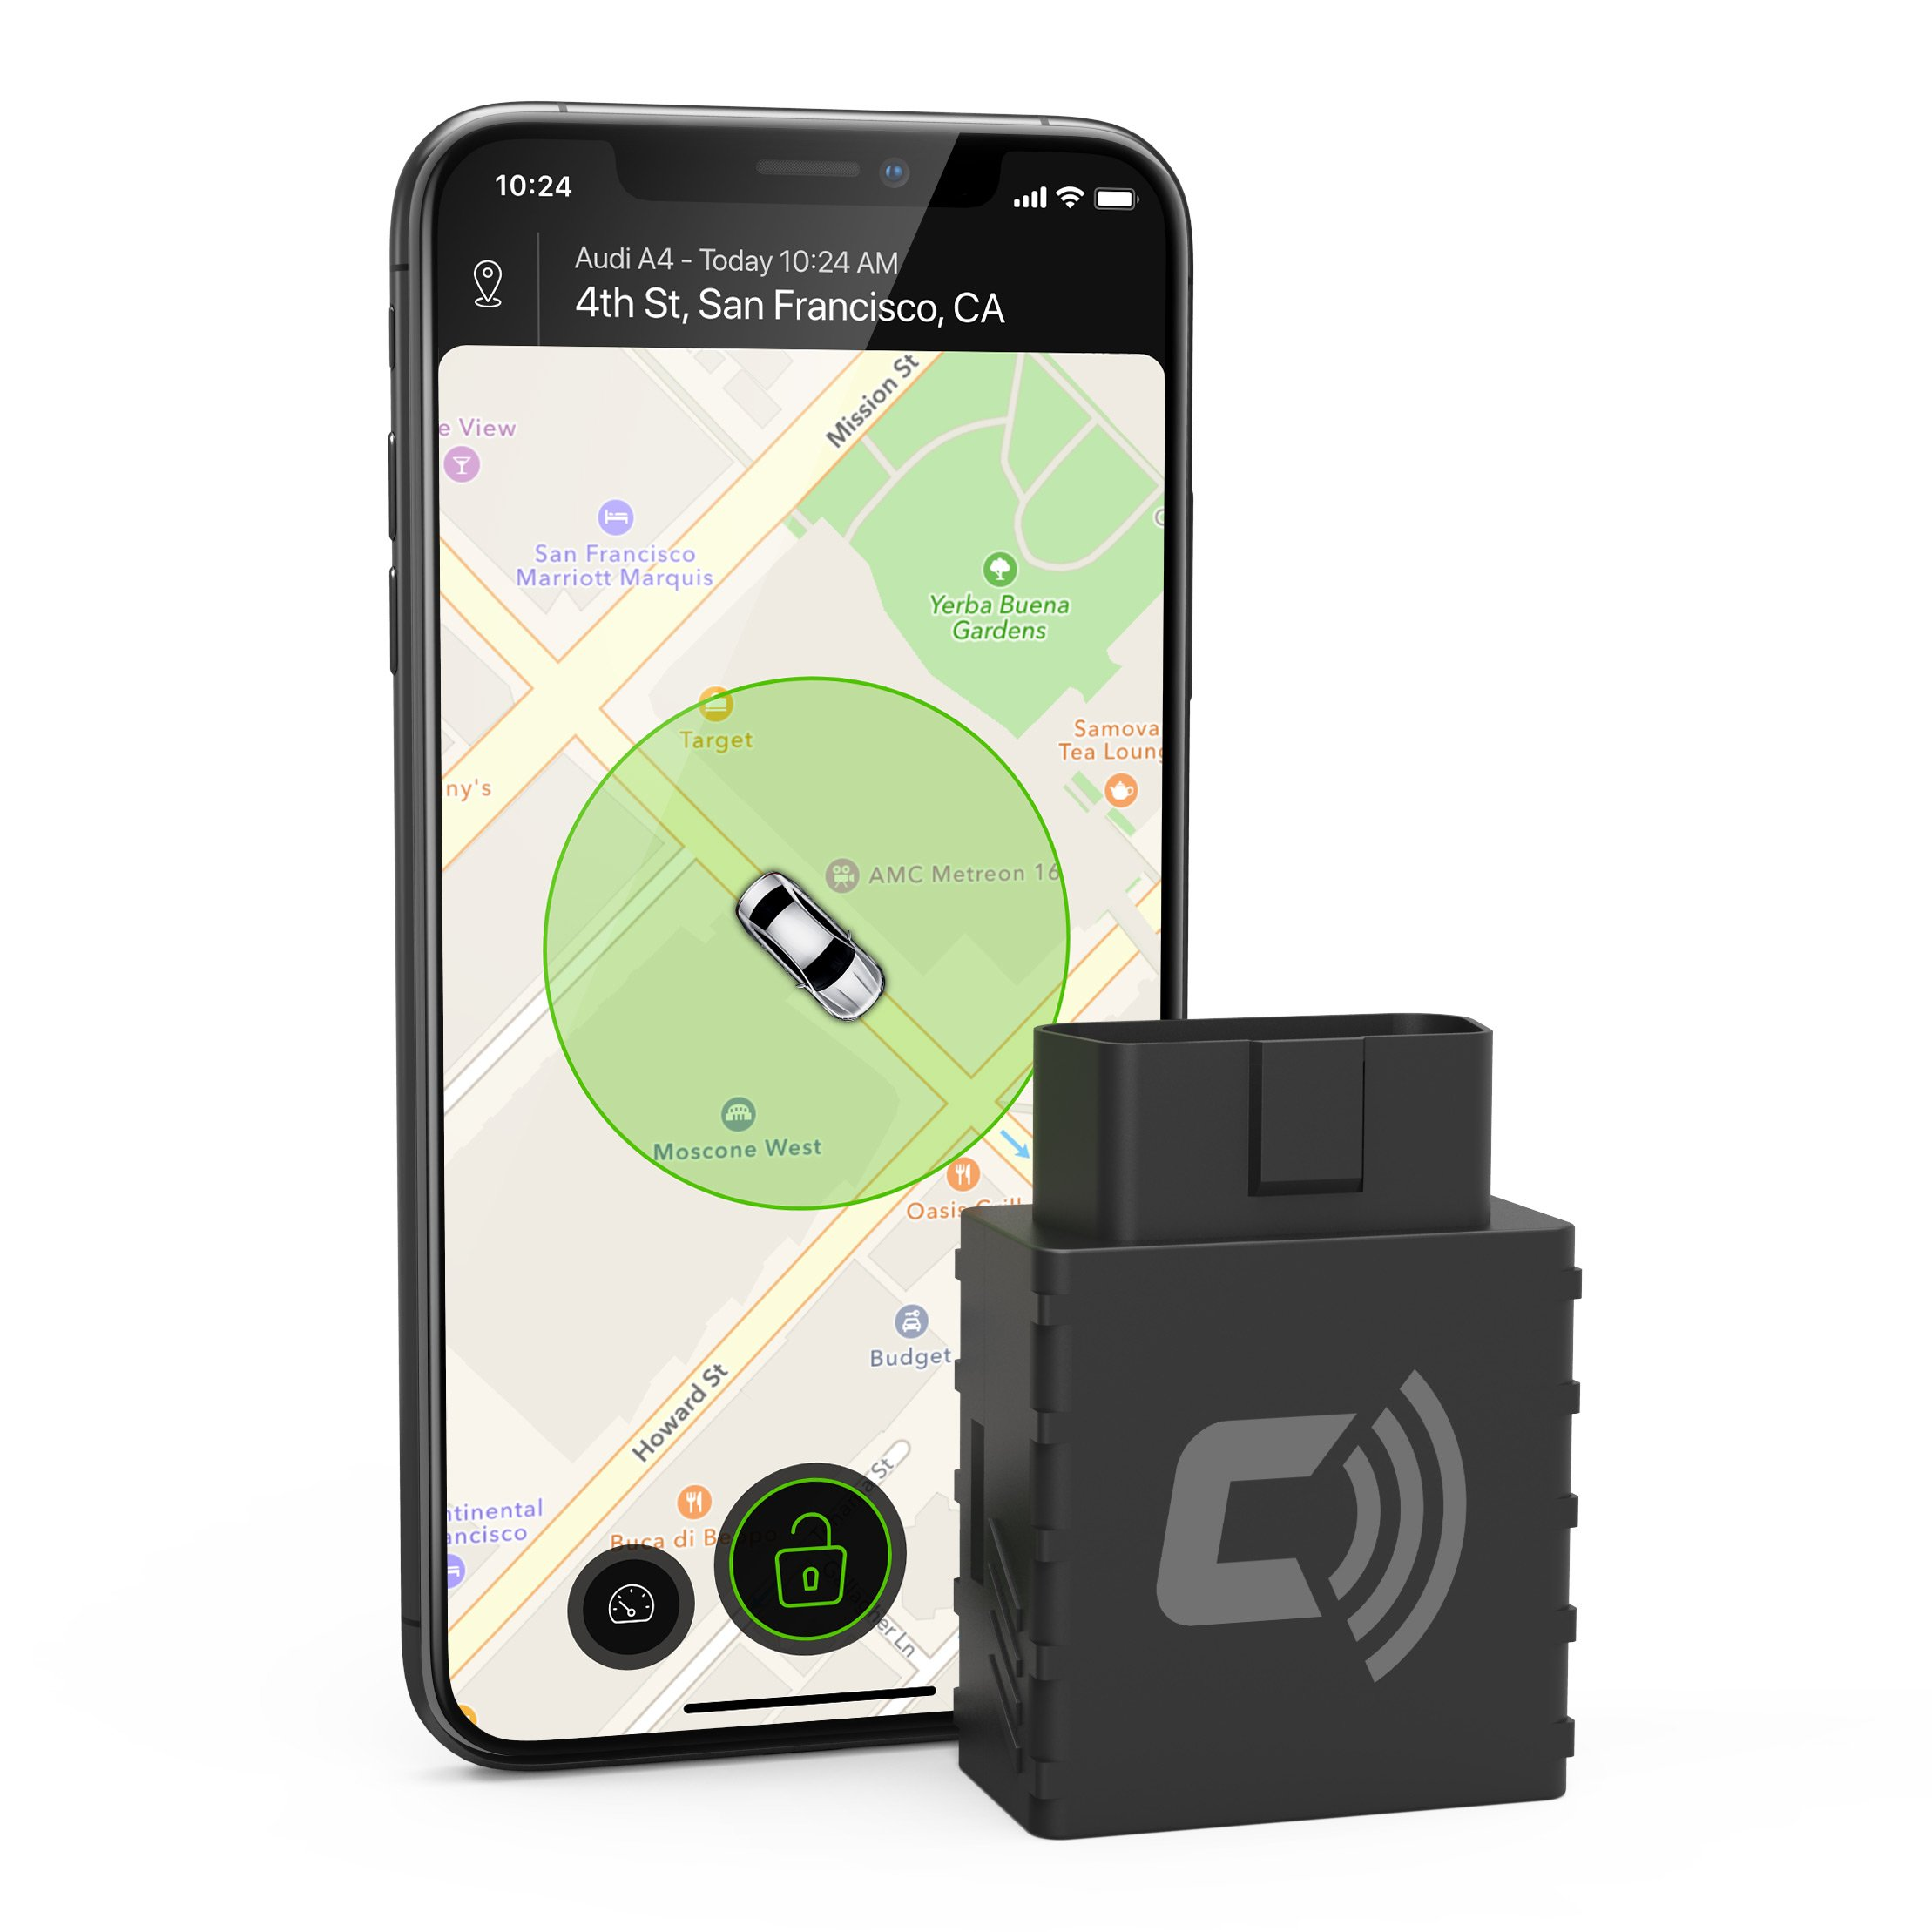 CarLock - Advanced Real Time Car Tracker & Alert System. Comes with Device & Phone App. Easily Tracks Your Car In Real Time & Notifies You Immediately of Suspicious Behavior. OBD Plug&Play by CarLock